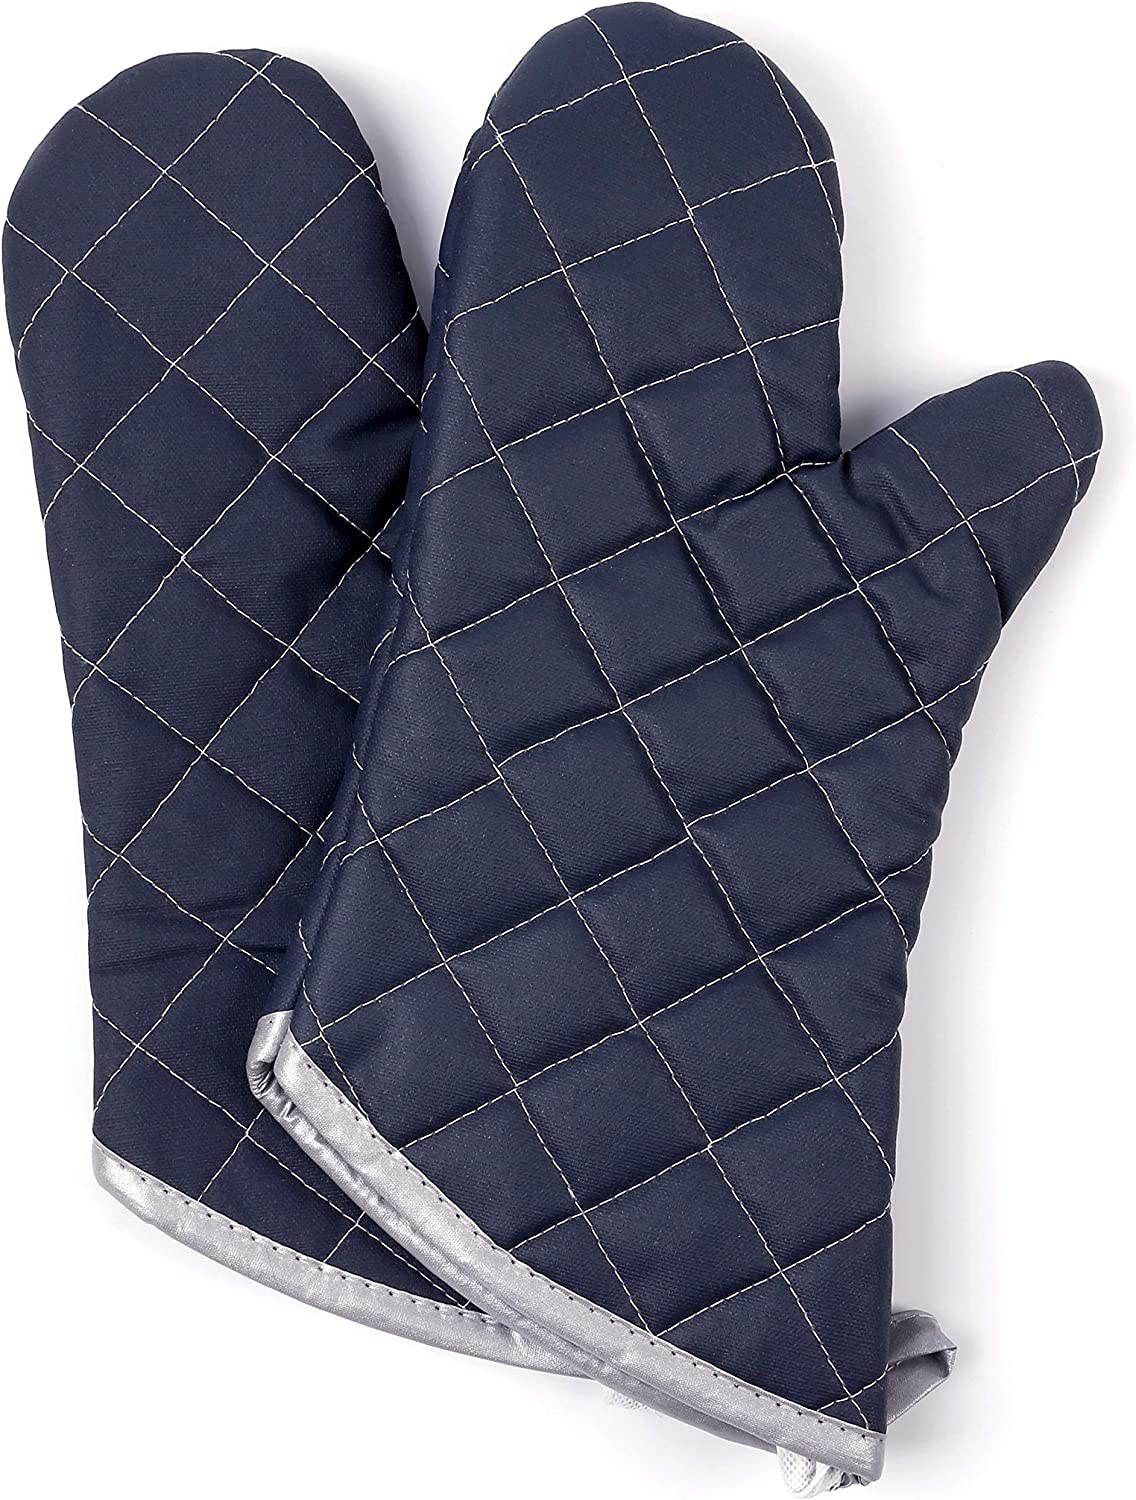 Oven Mitts 1 Pair of Quilted Cotton Lining - Heat Resistant to 425°F Kitchen Gloves,Flame Oven Mitt Set (Black, Cotton)